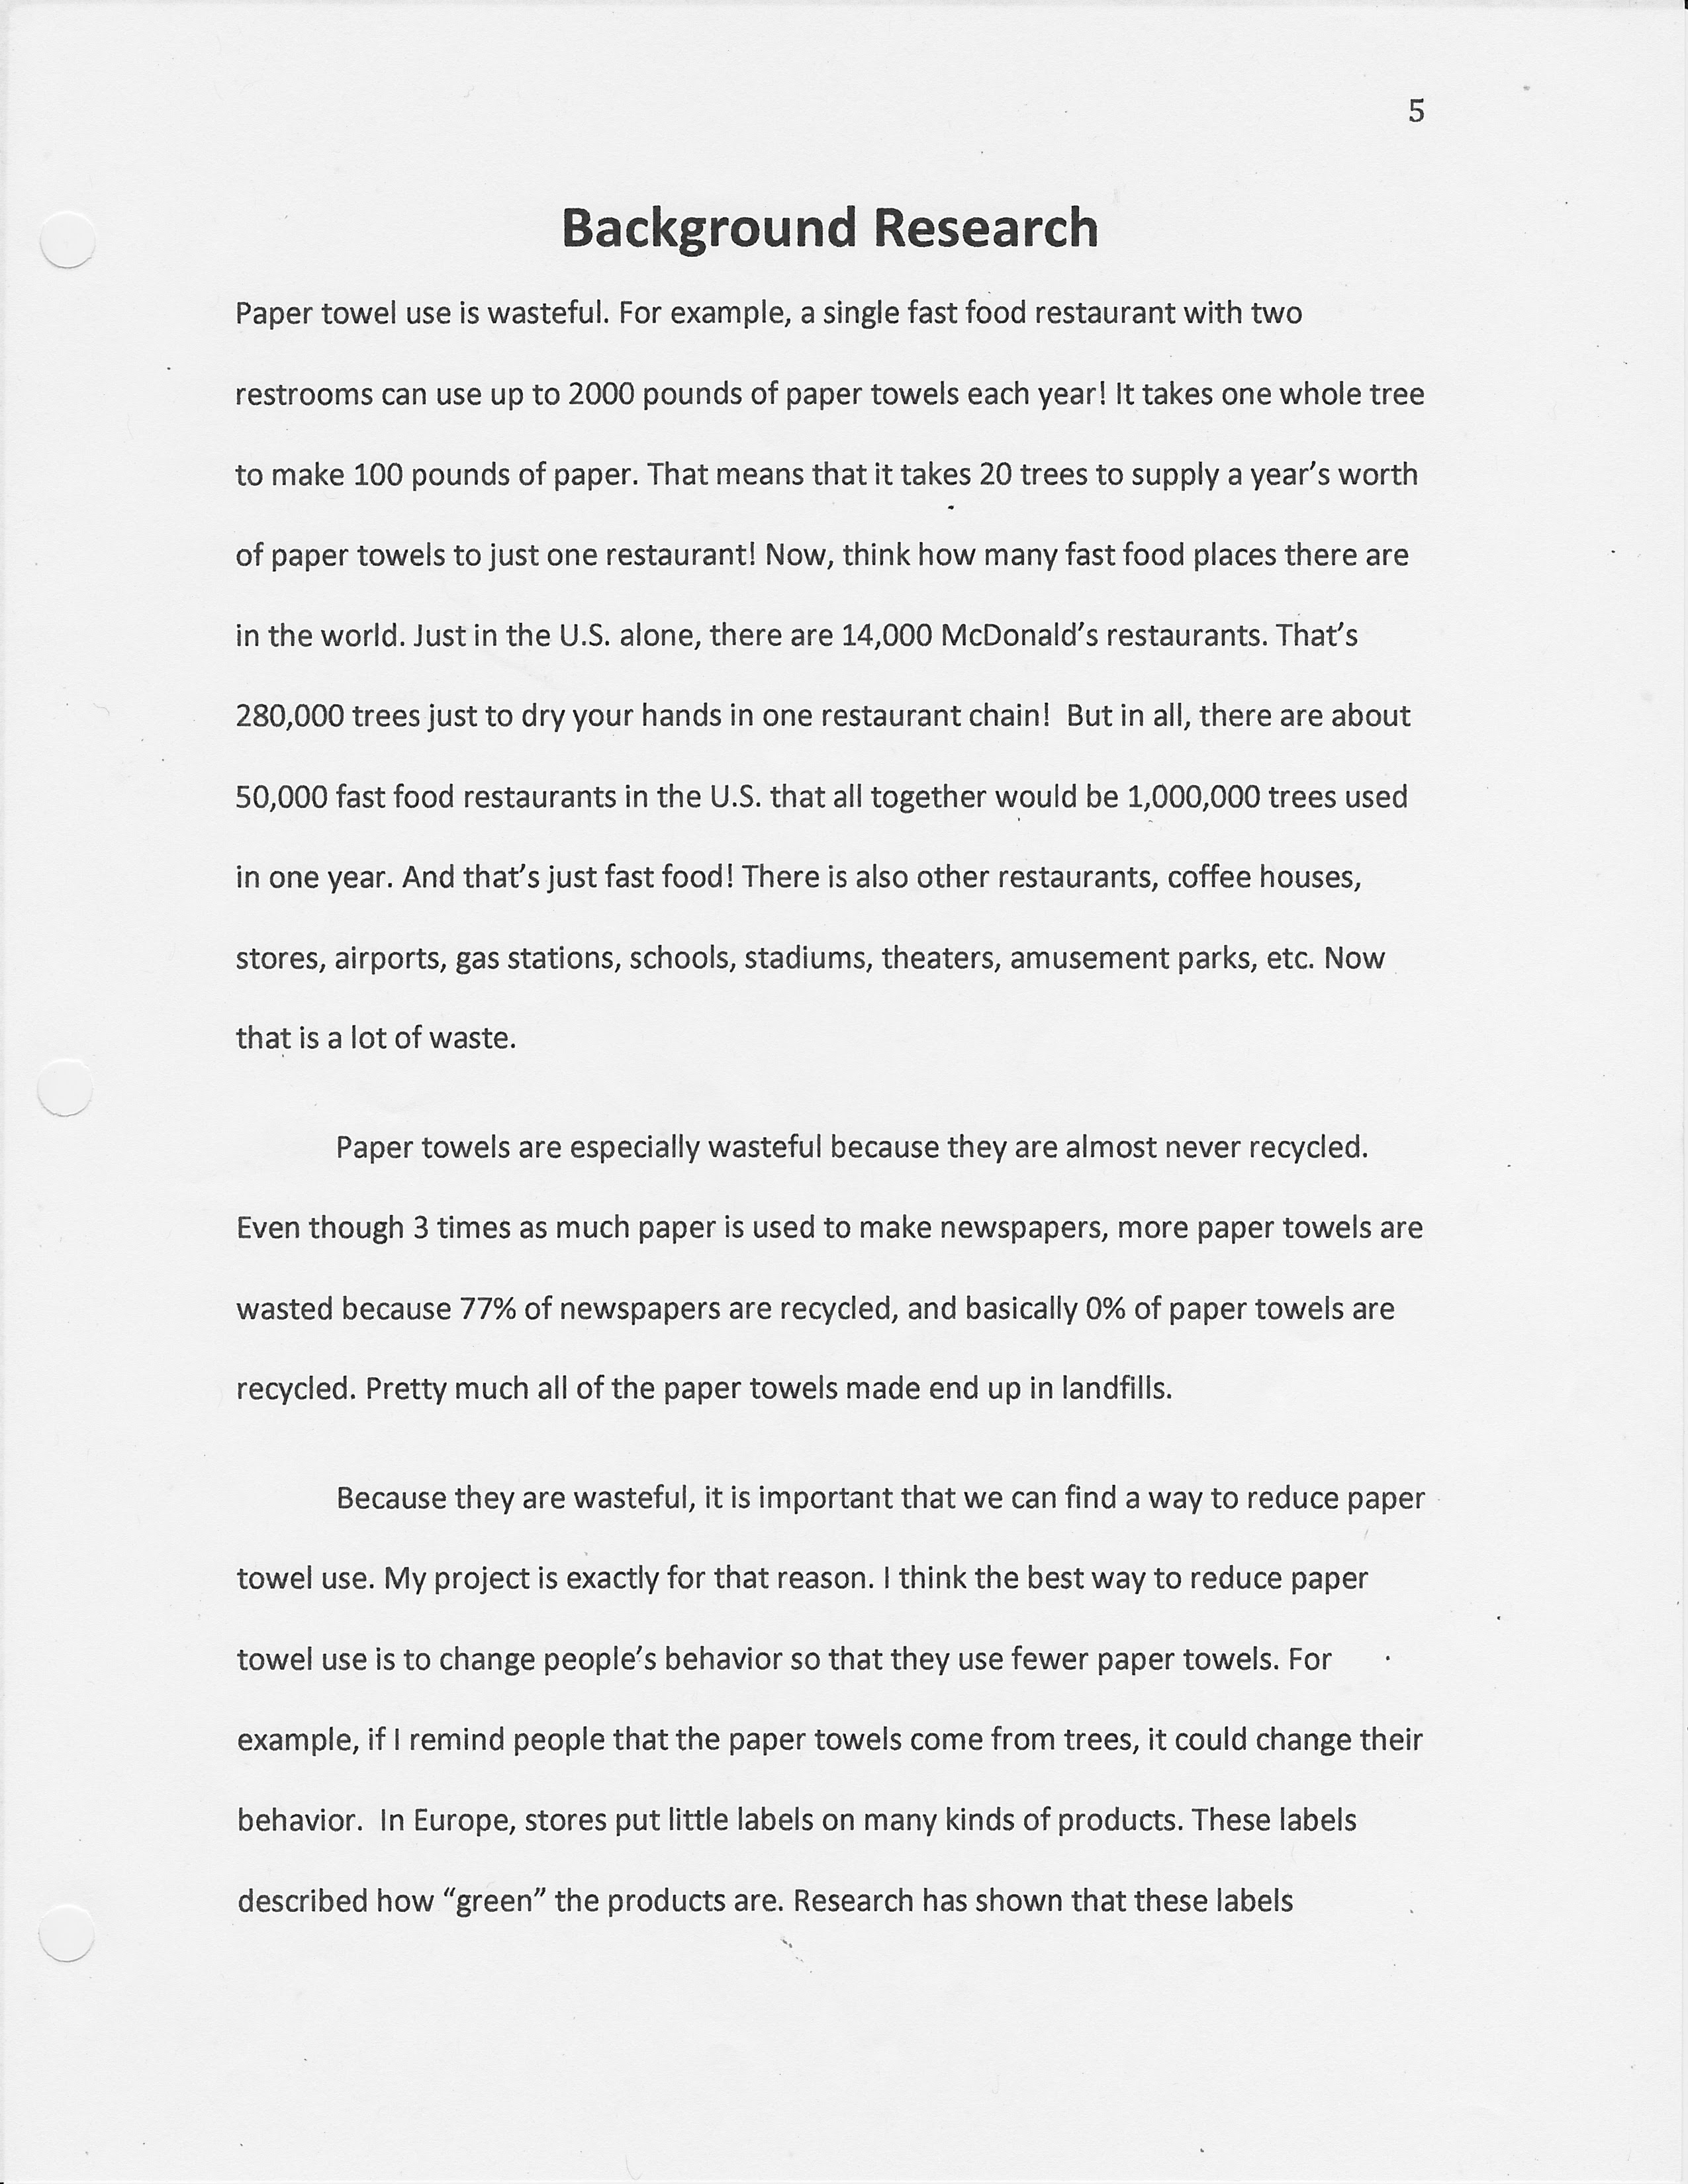 008 Research Paper Scn 0005heightu003d320u0026widthu003d247 Background Science Fair Breathtaking Example How To Write A For Full